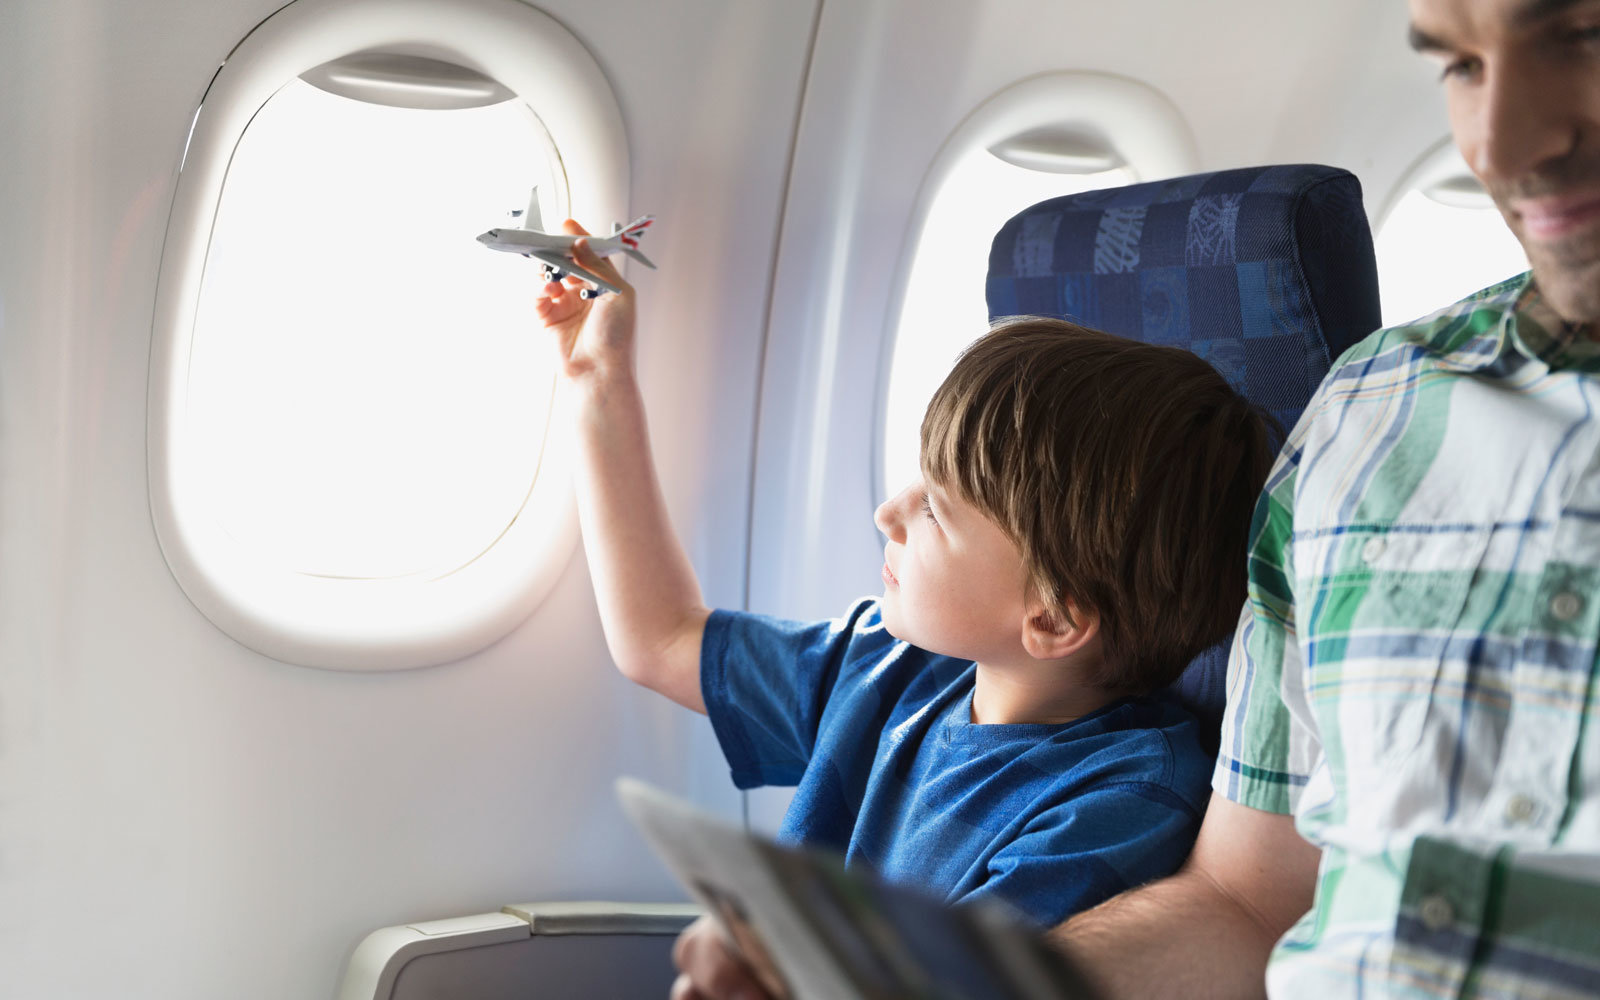 kid-in-airplane-FREE1216.jpg